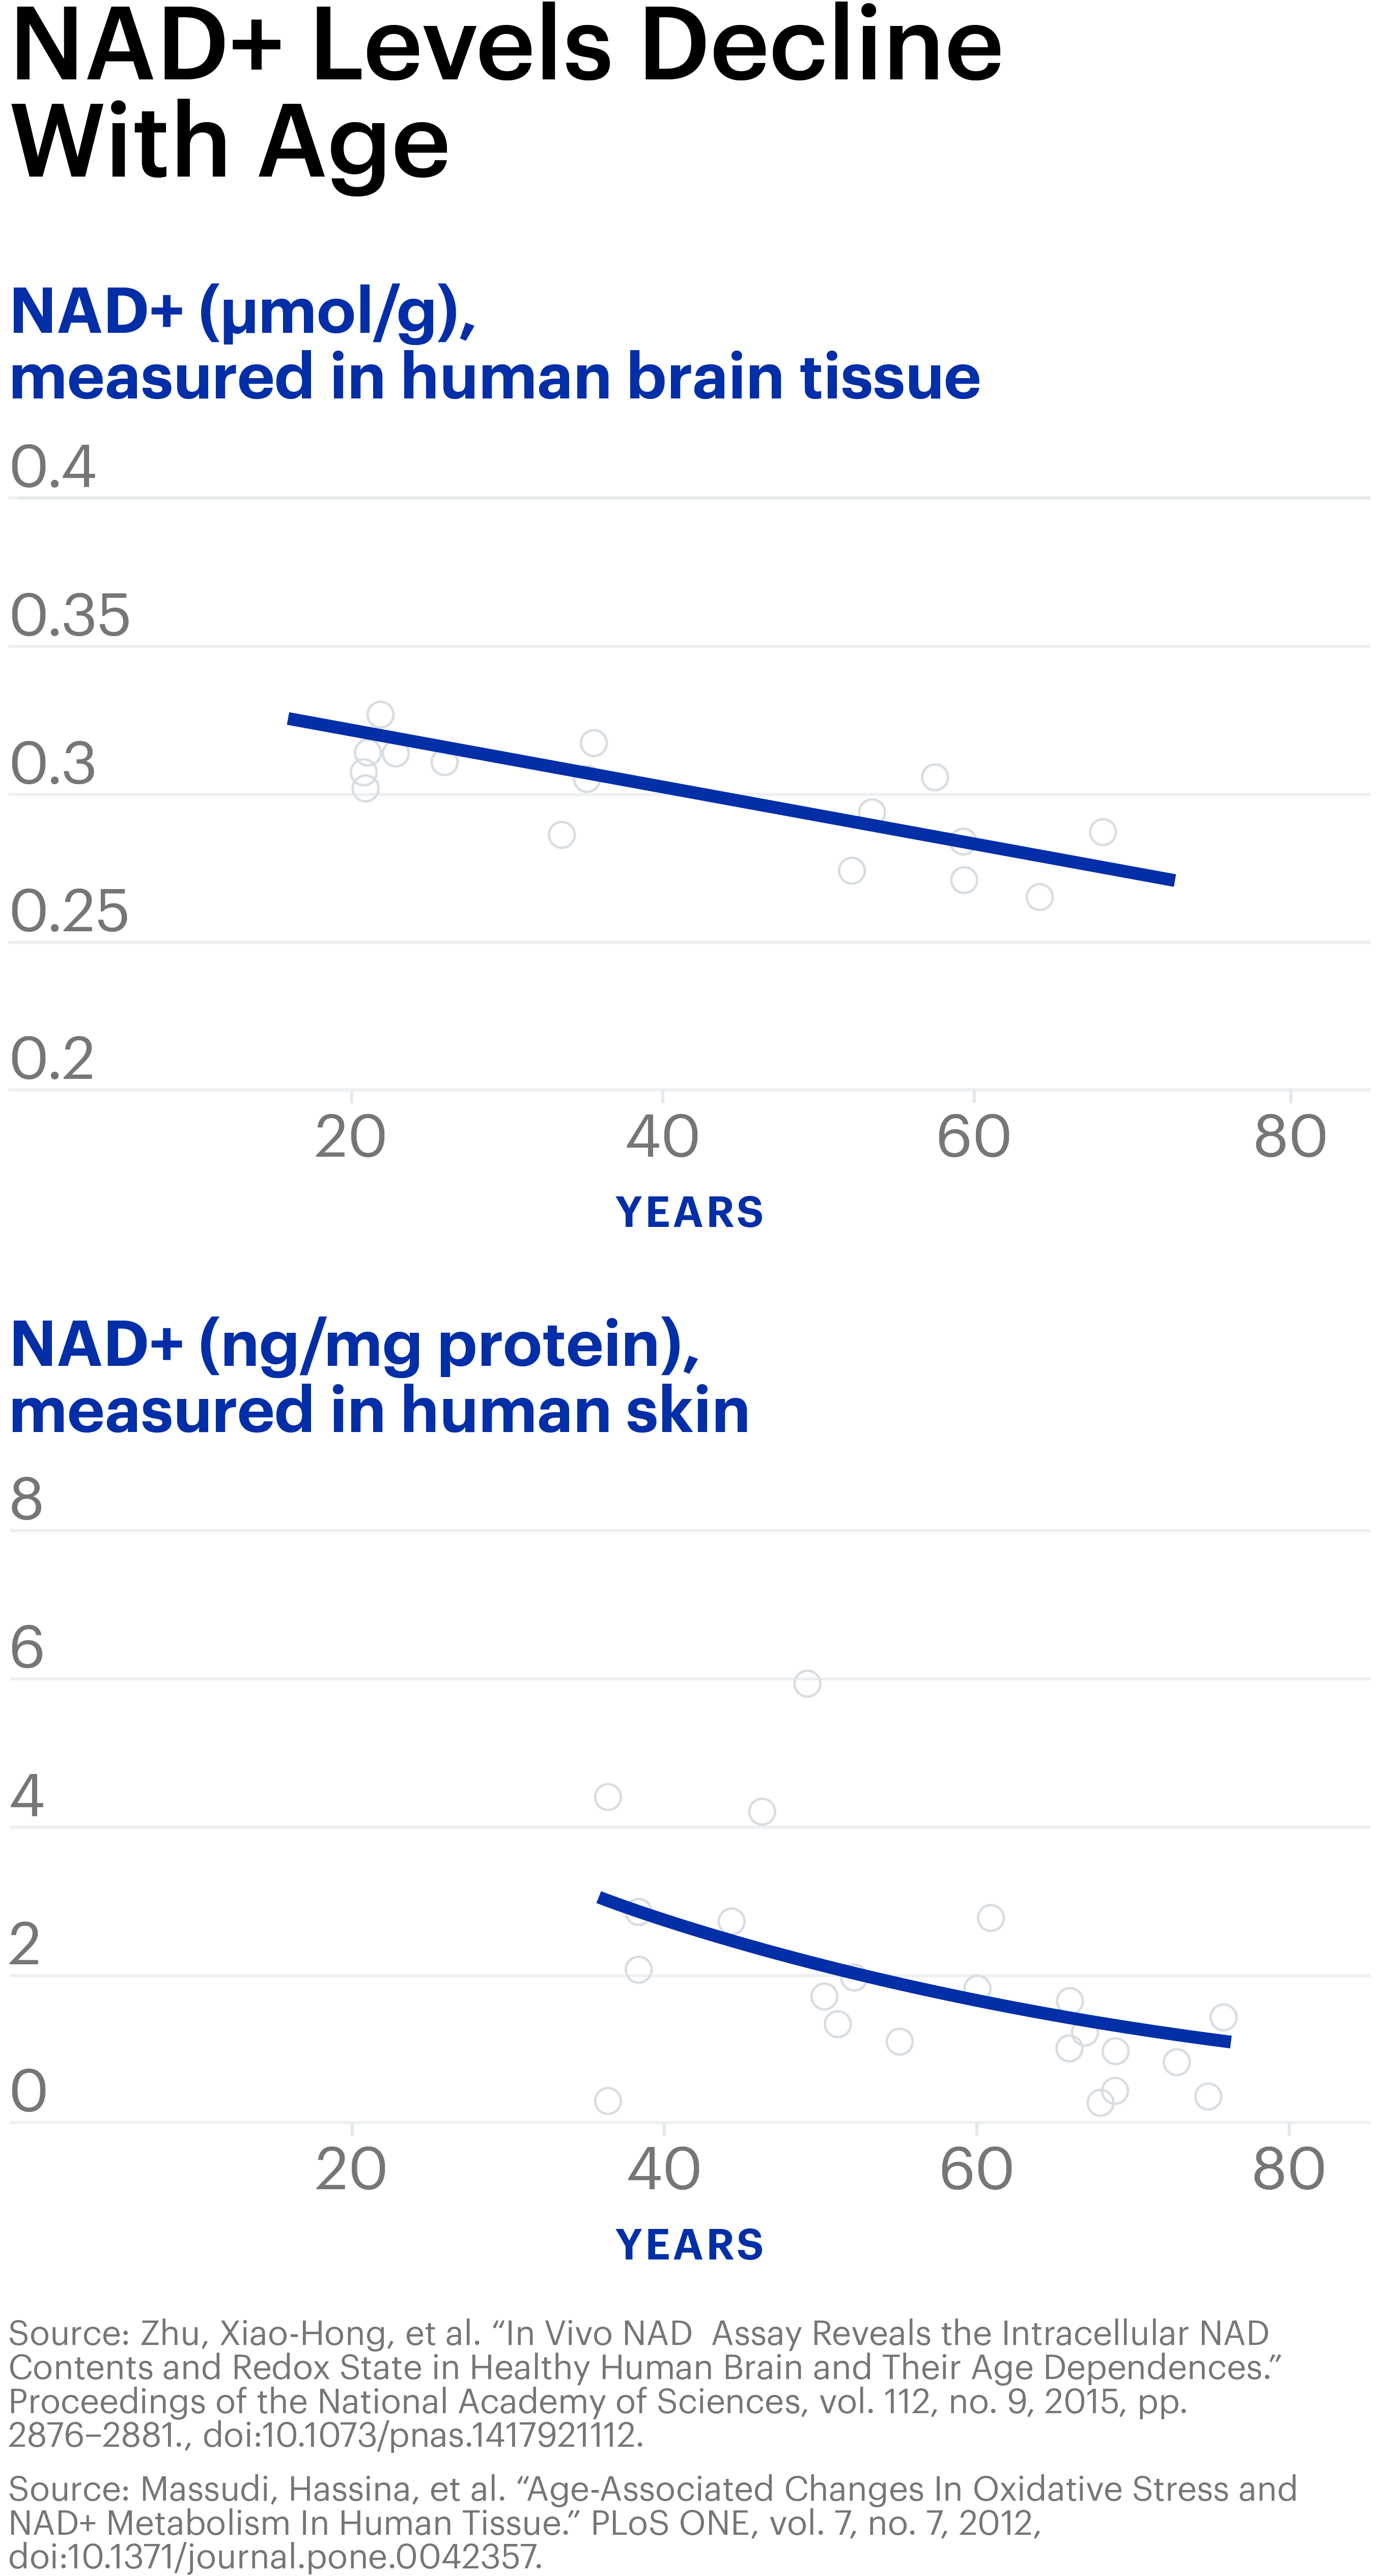 NAD+ Science 101 - What Is NAD+ & Why It's Important